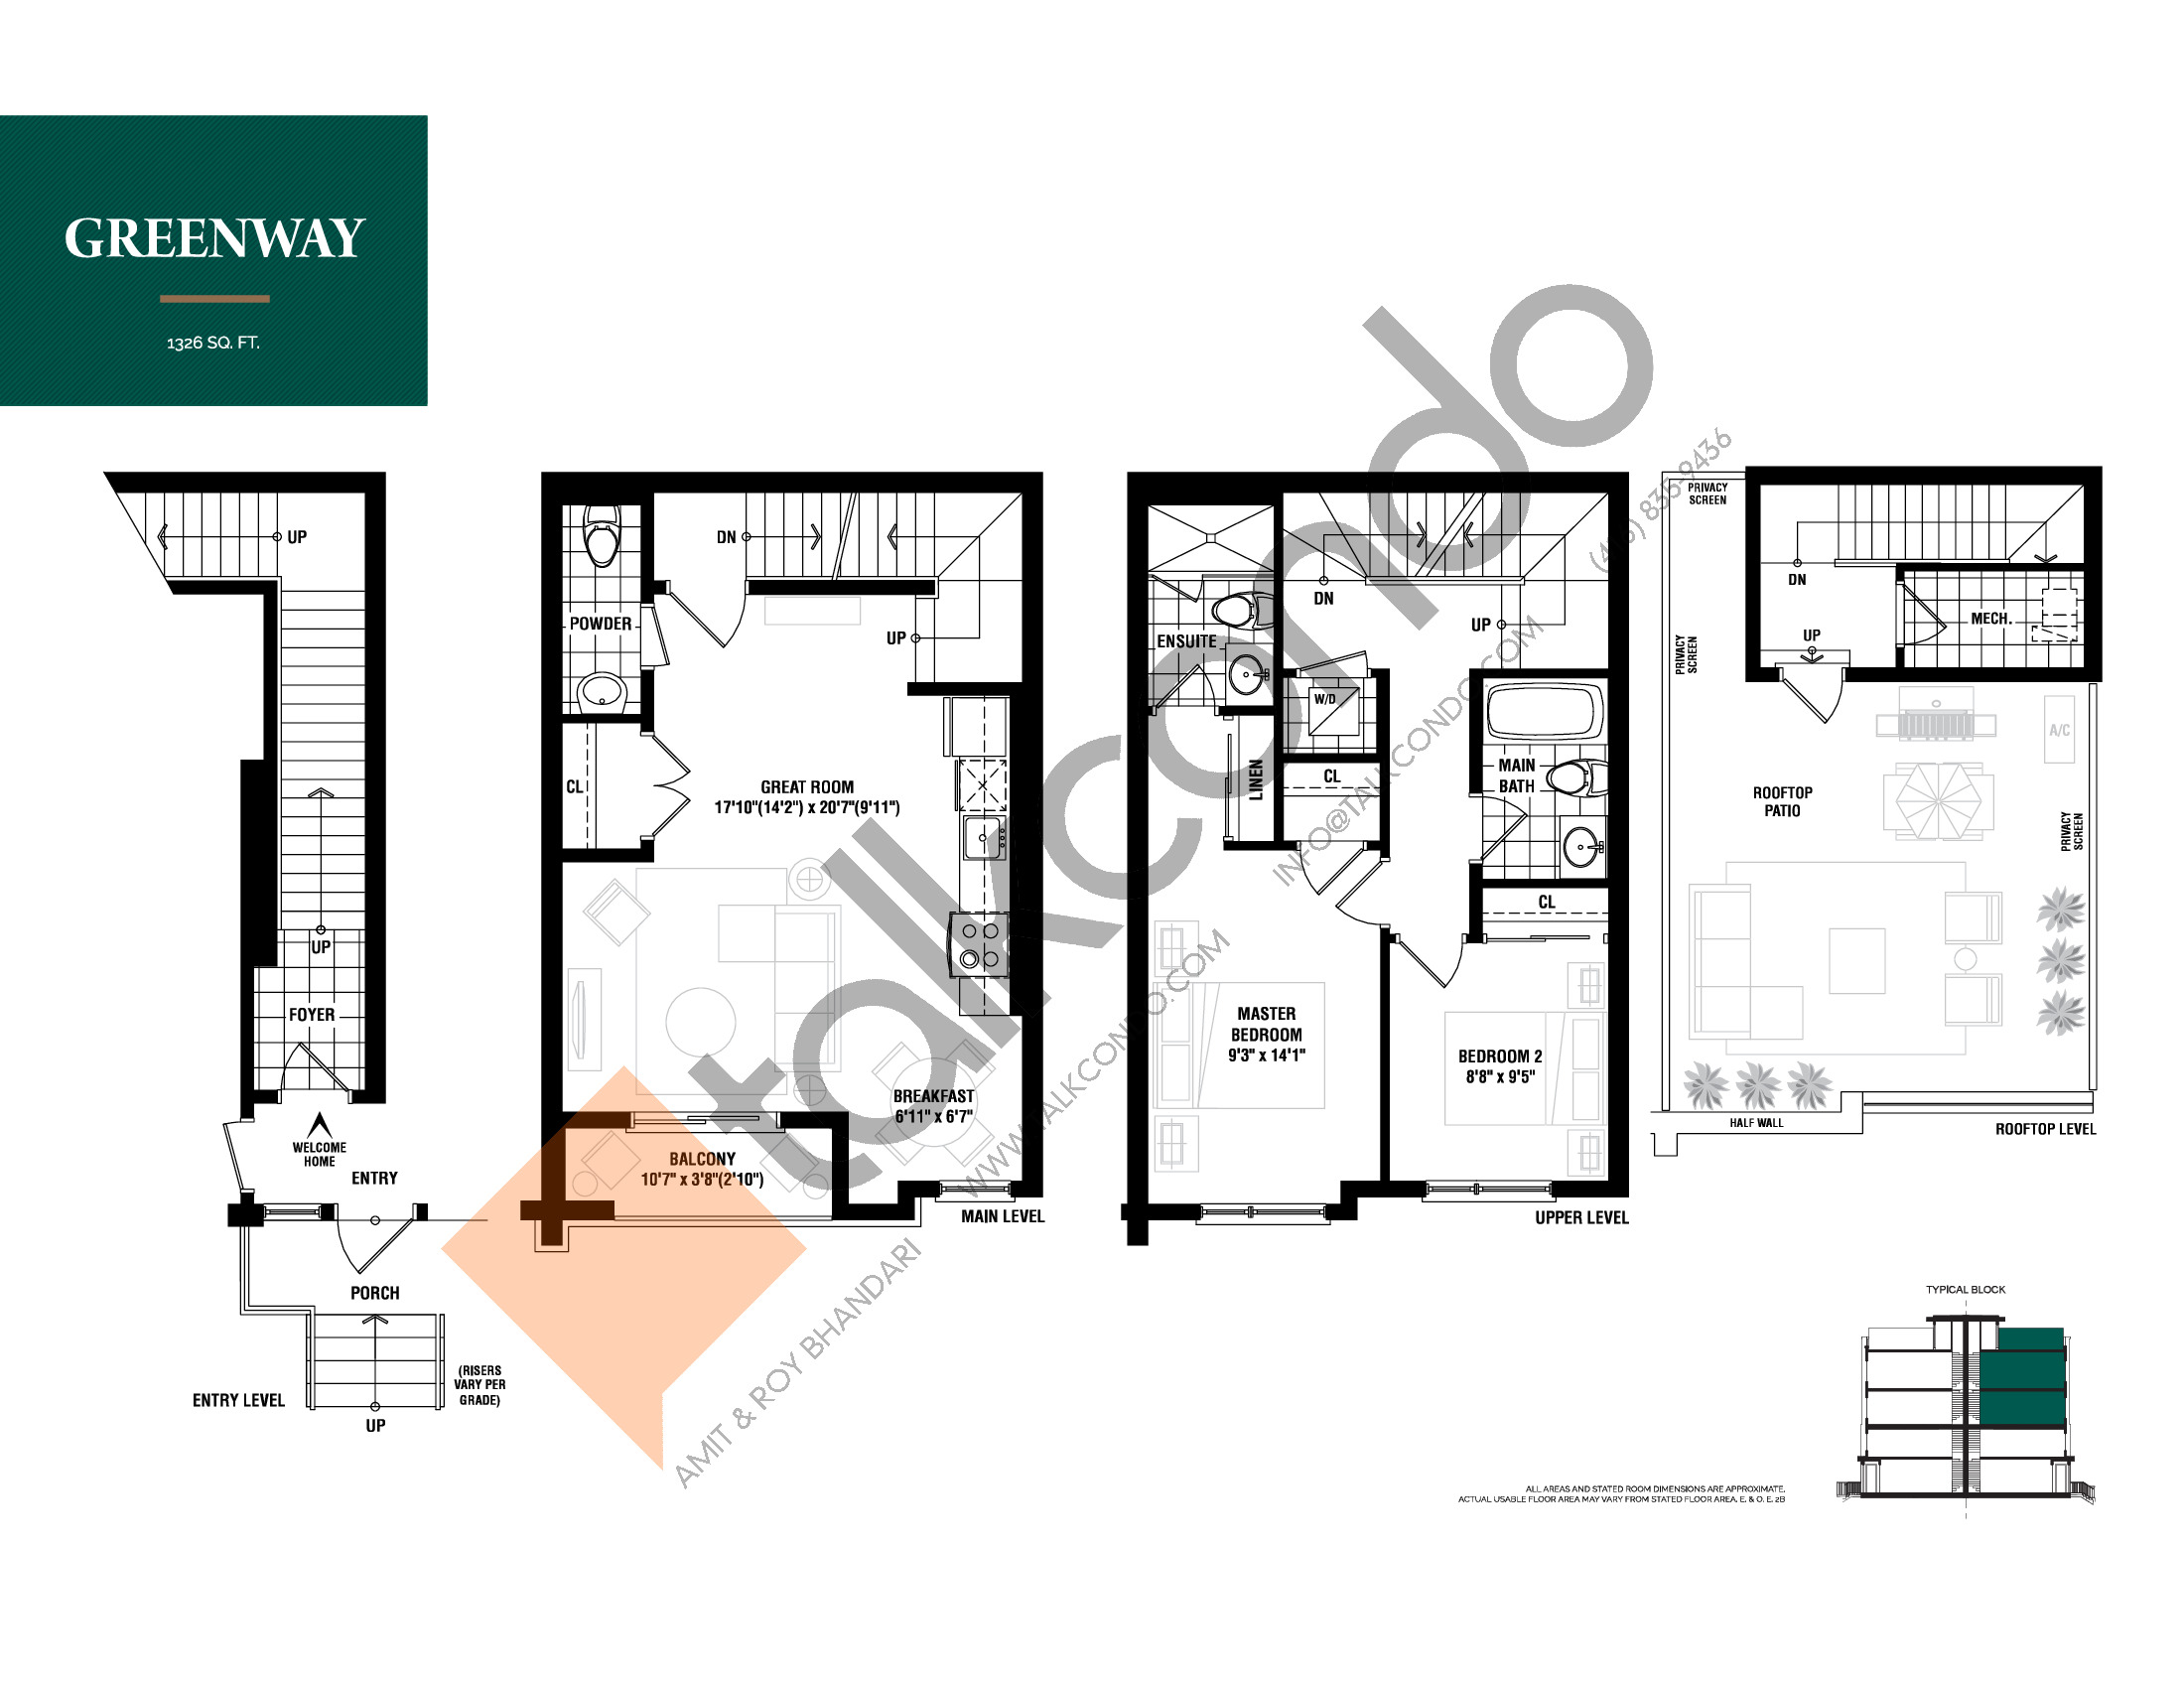 Greenway Floor Plan at The Way Urban Towns - 1326 sq.ft